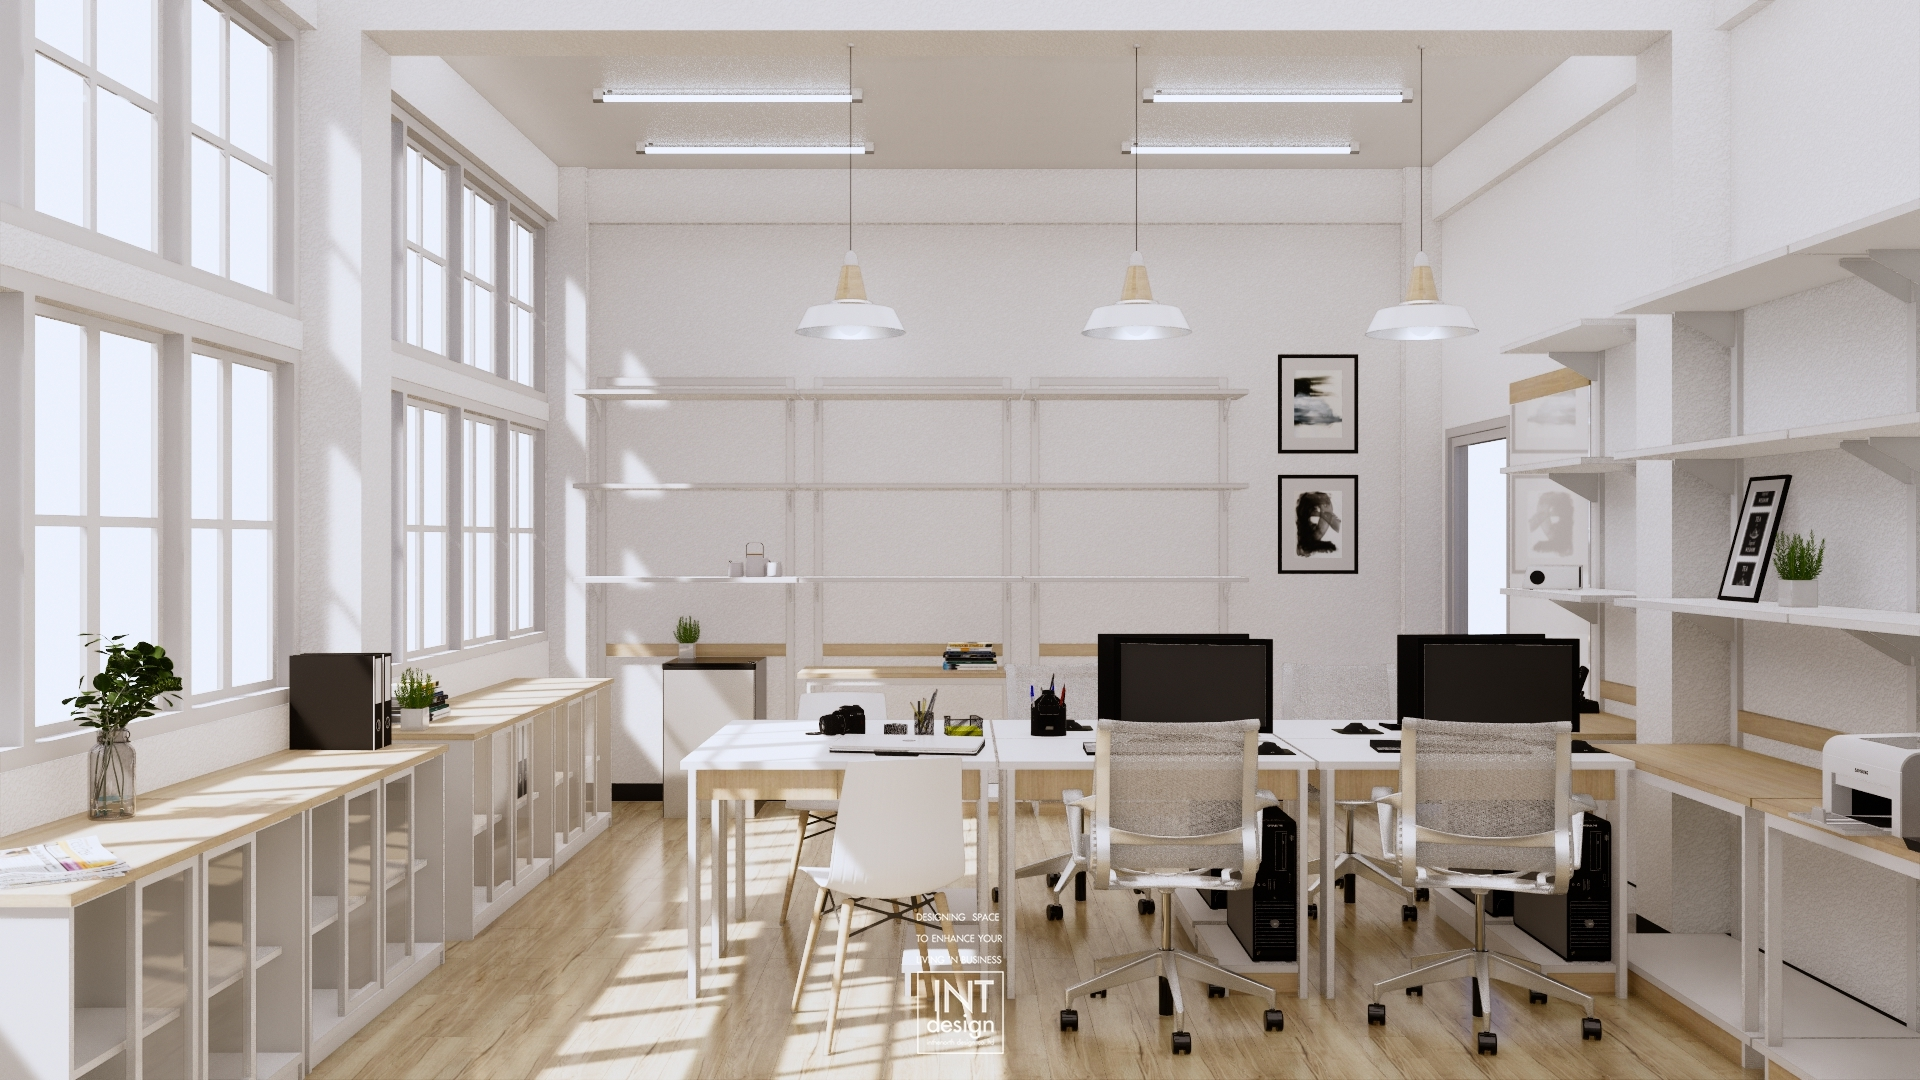 Inthenorth Design Workplace design 2